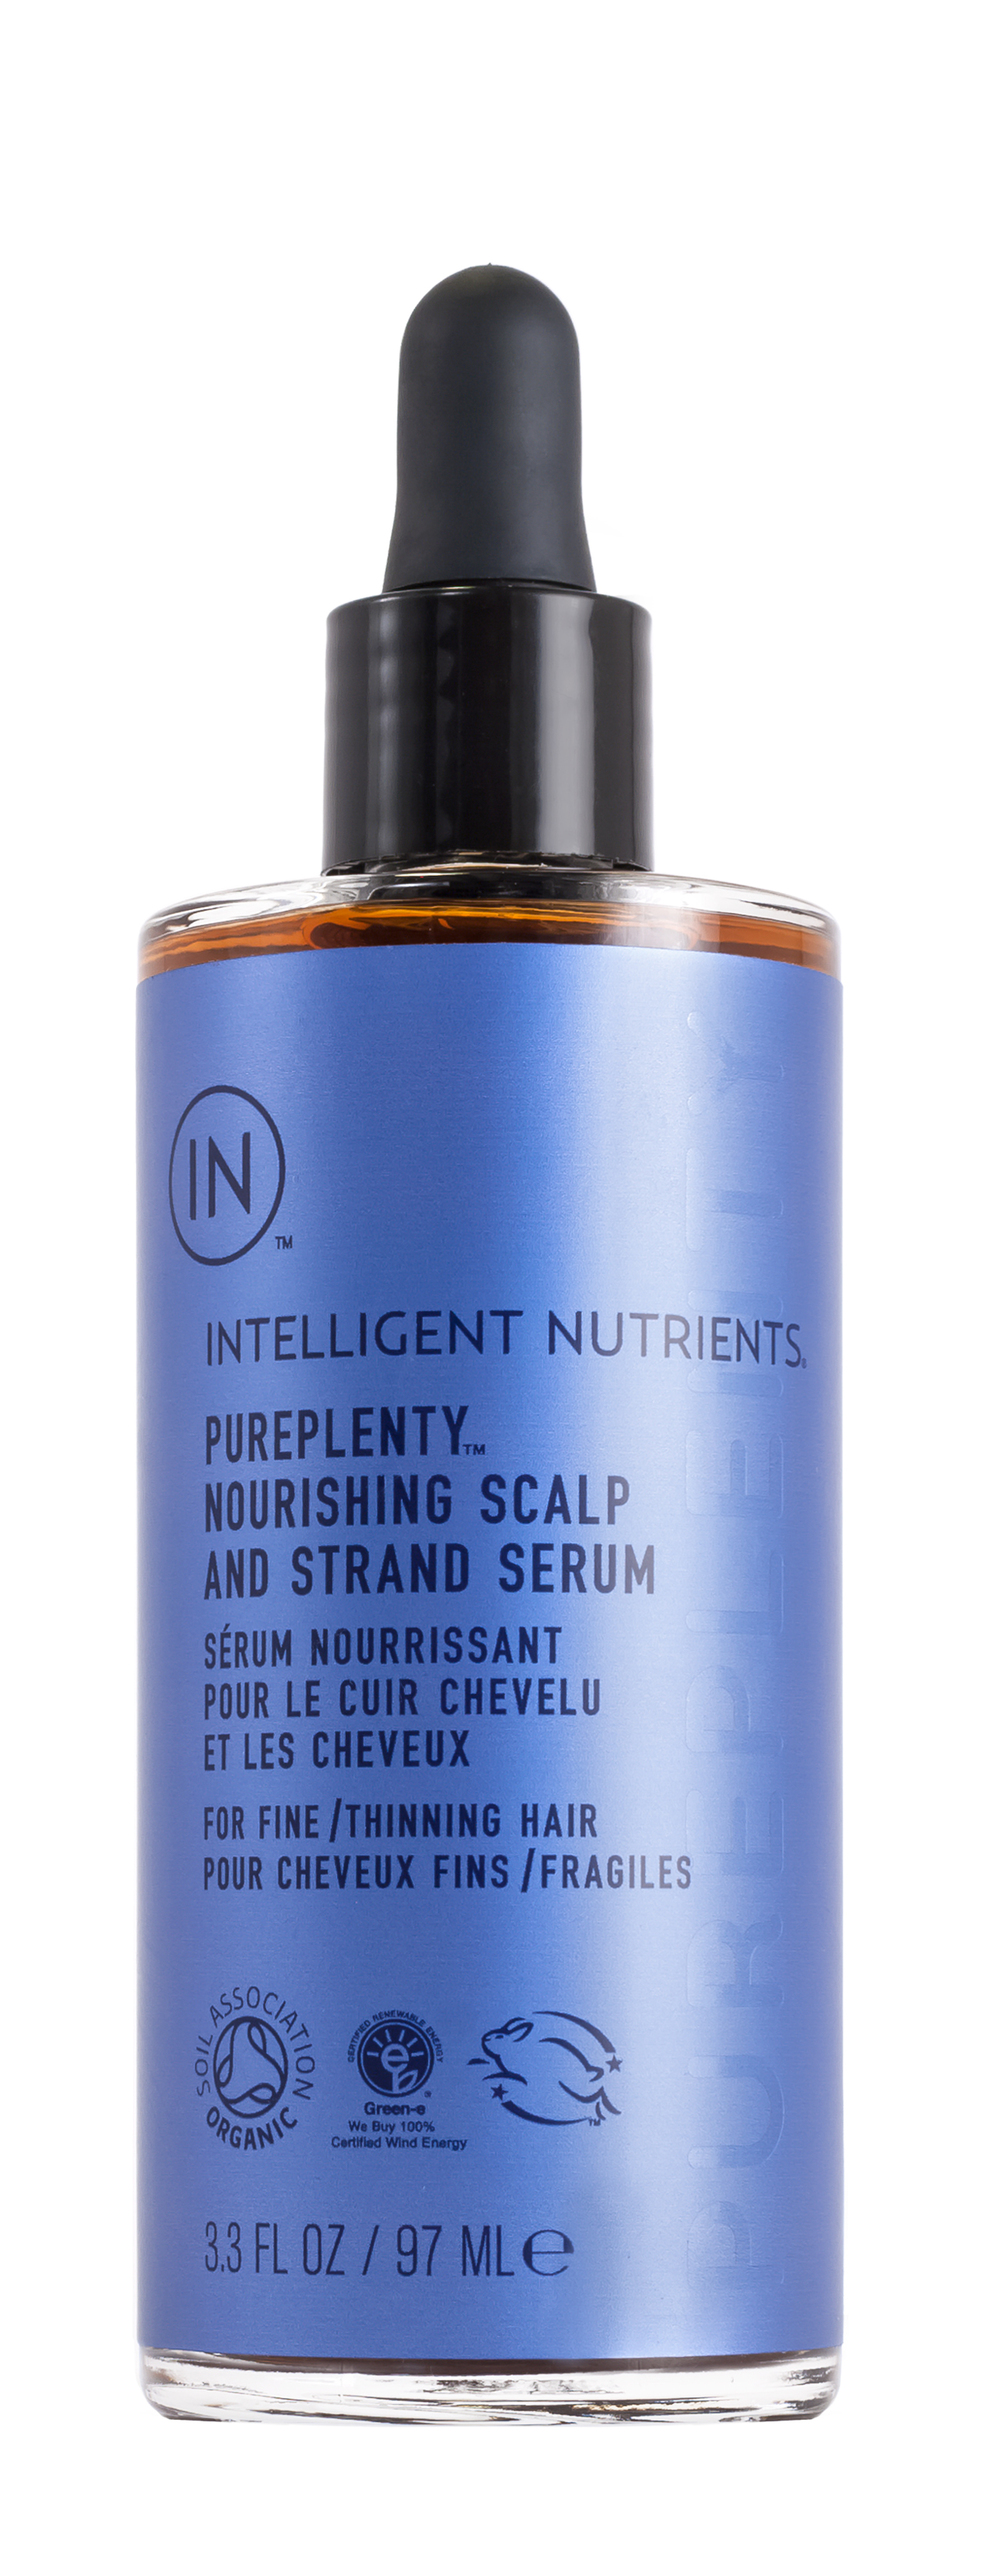 PurePlenty™ Nourishing Scalp & Strand Serum (DKK590/97ml)